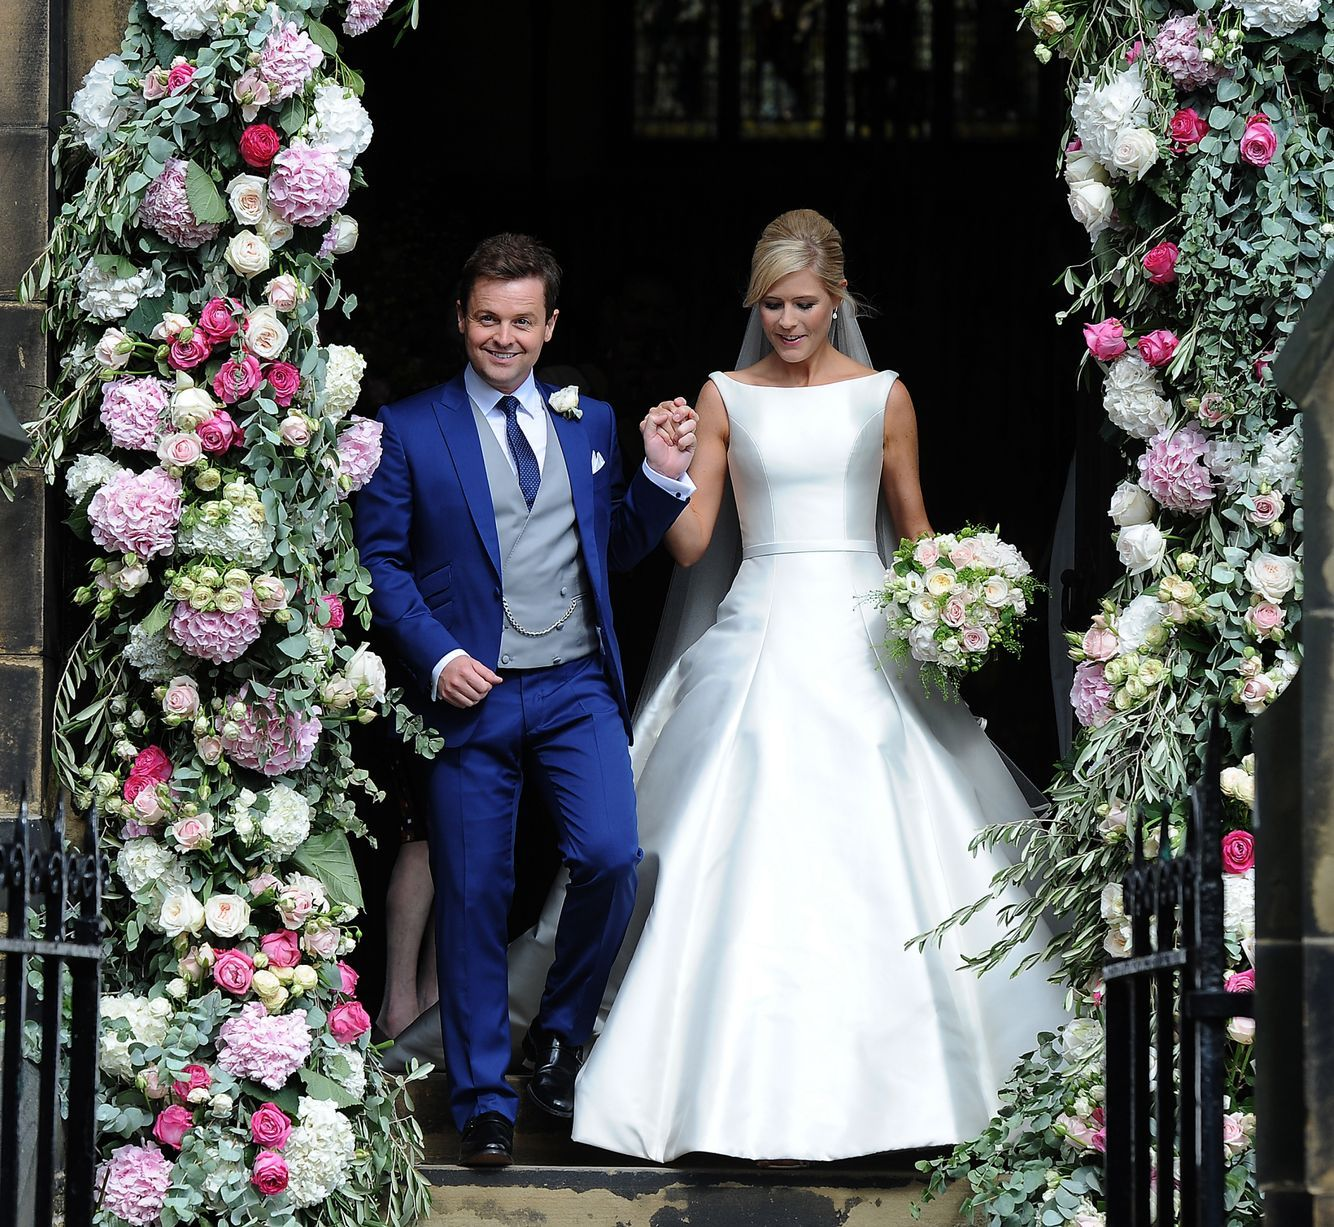 Declan Donnelly And Ali Astall Wedding: First Picture Of